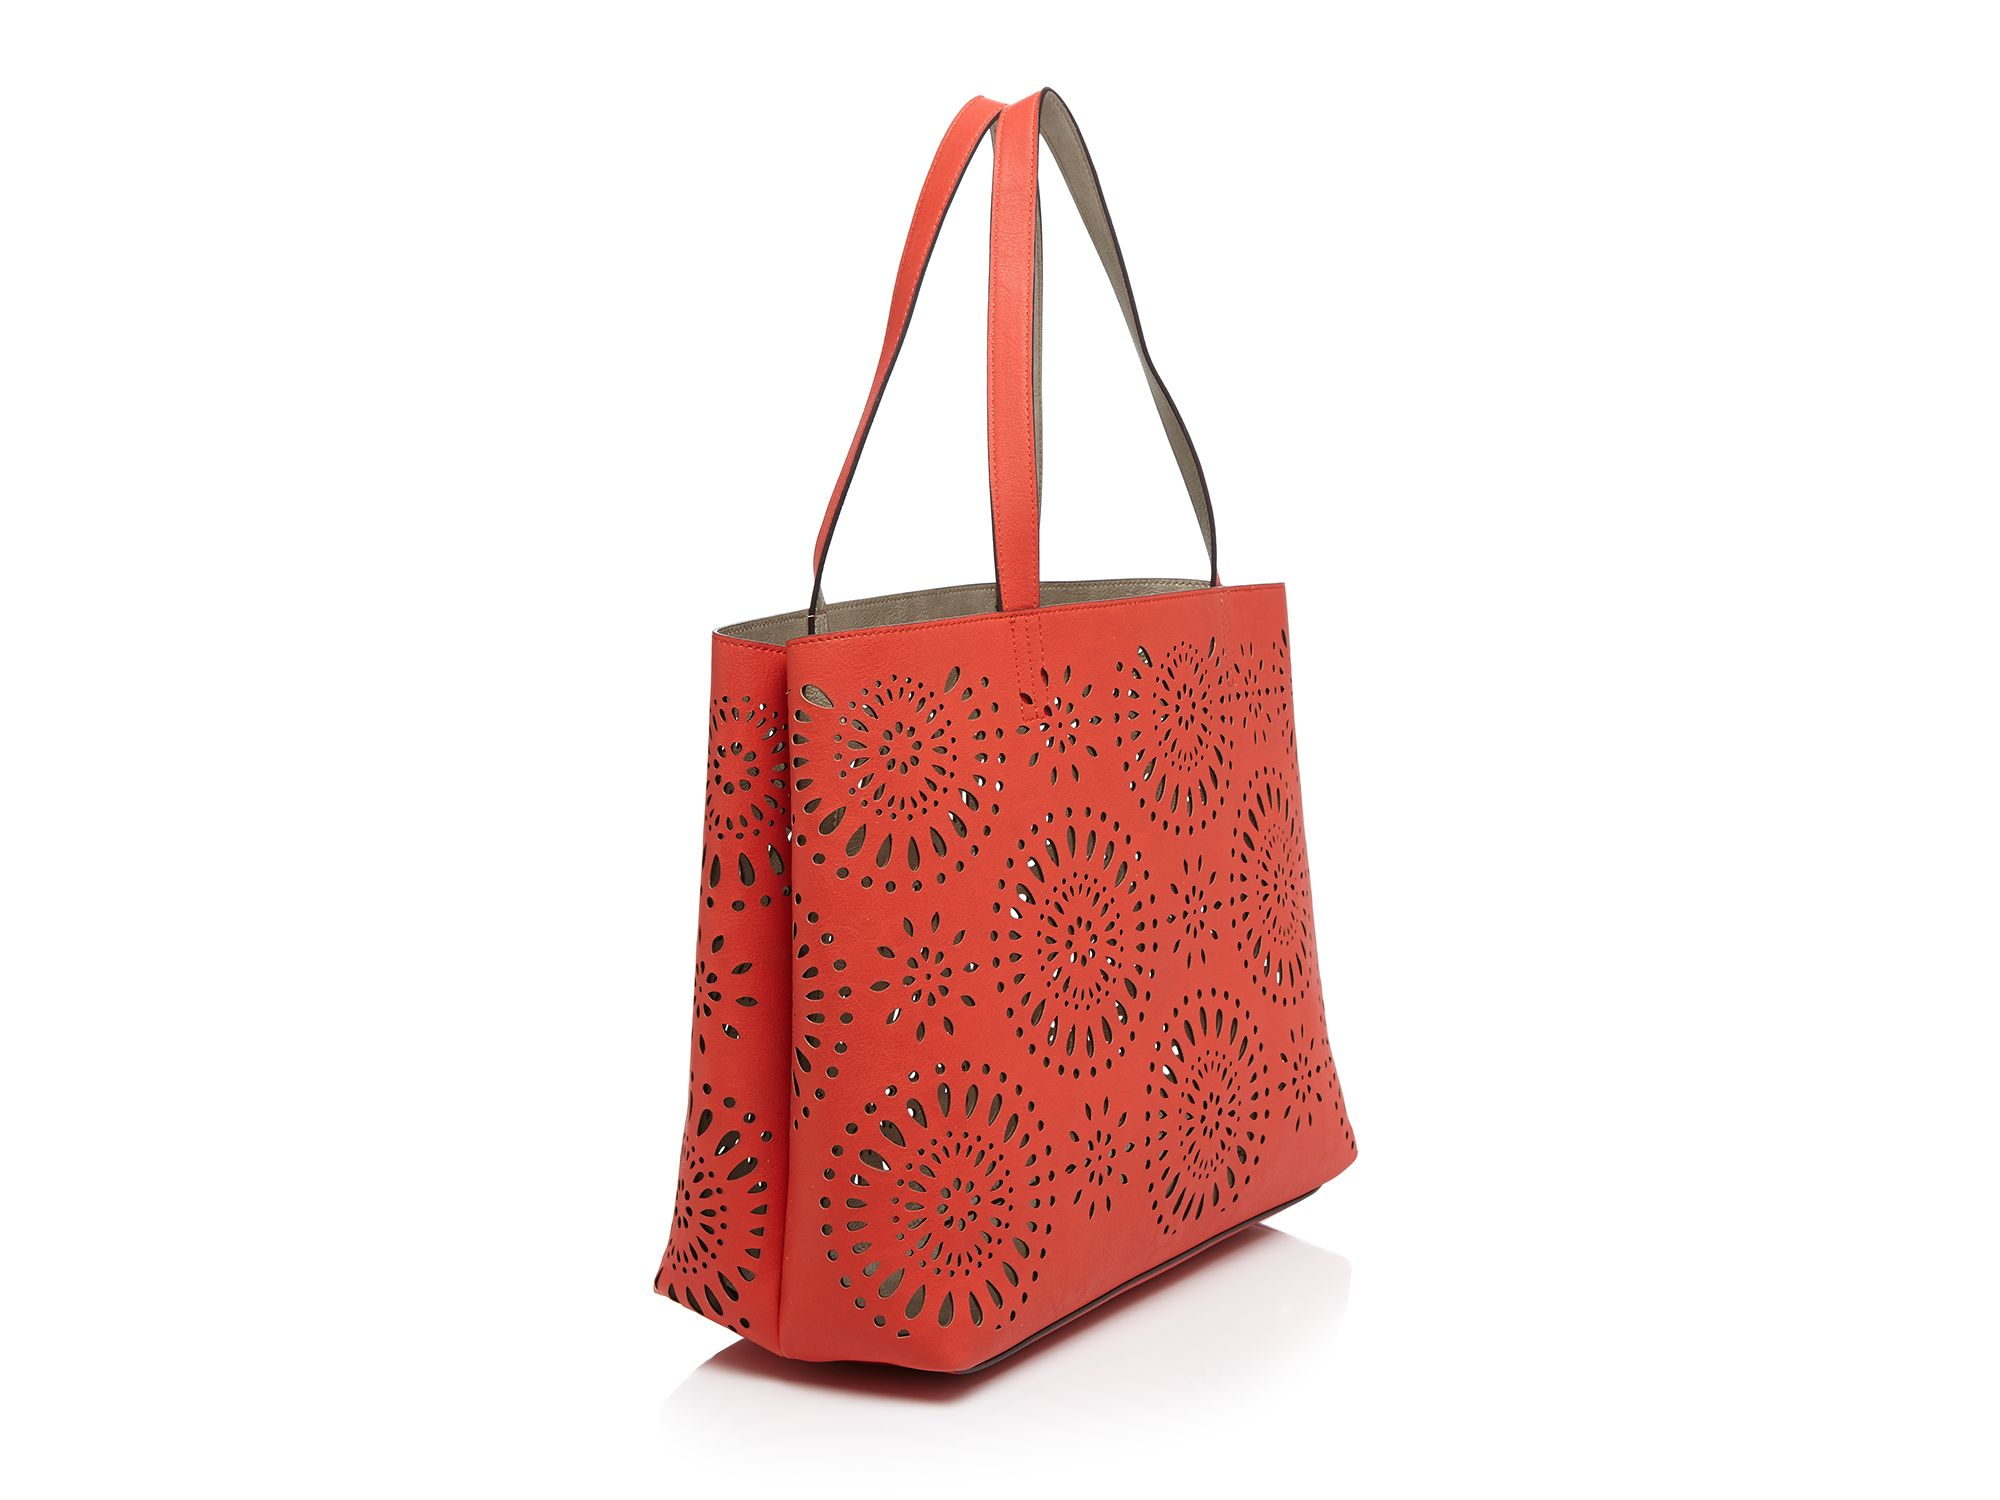 Echo Tote - Starburst Cut Out in Pink